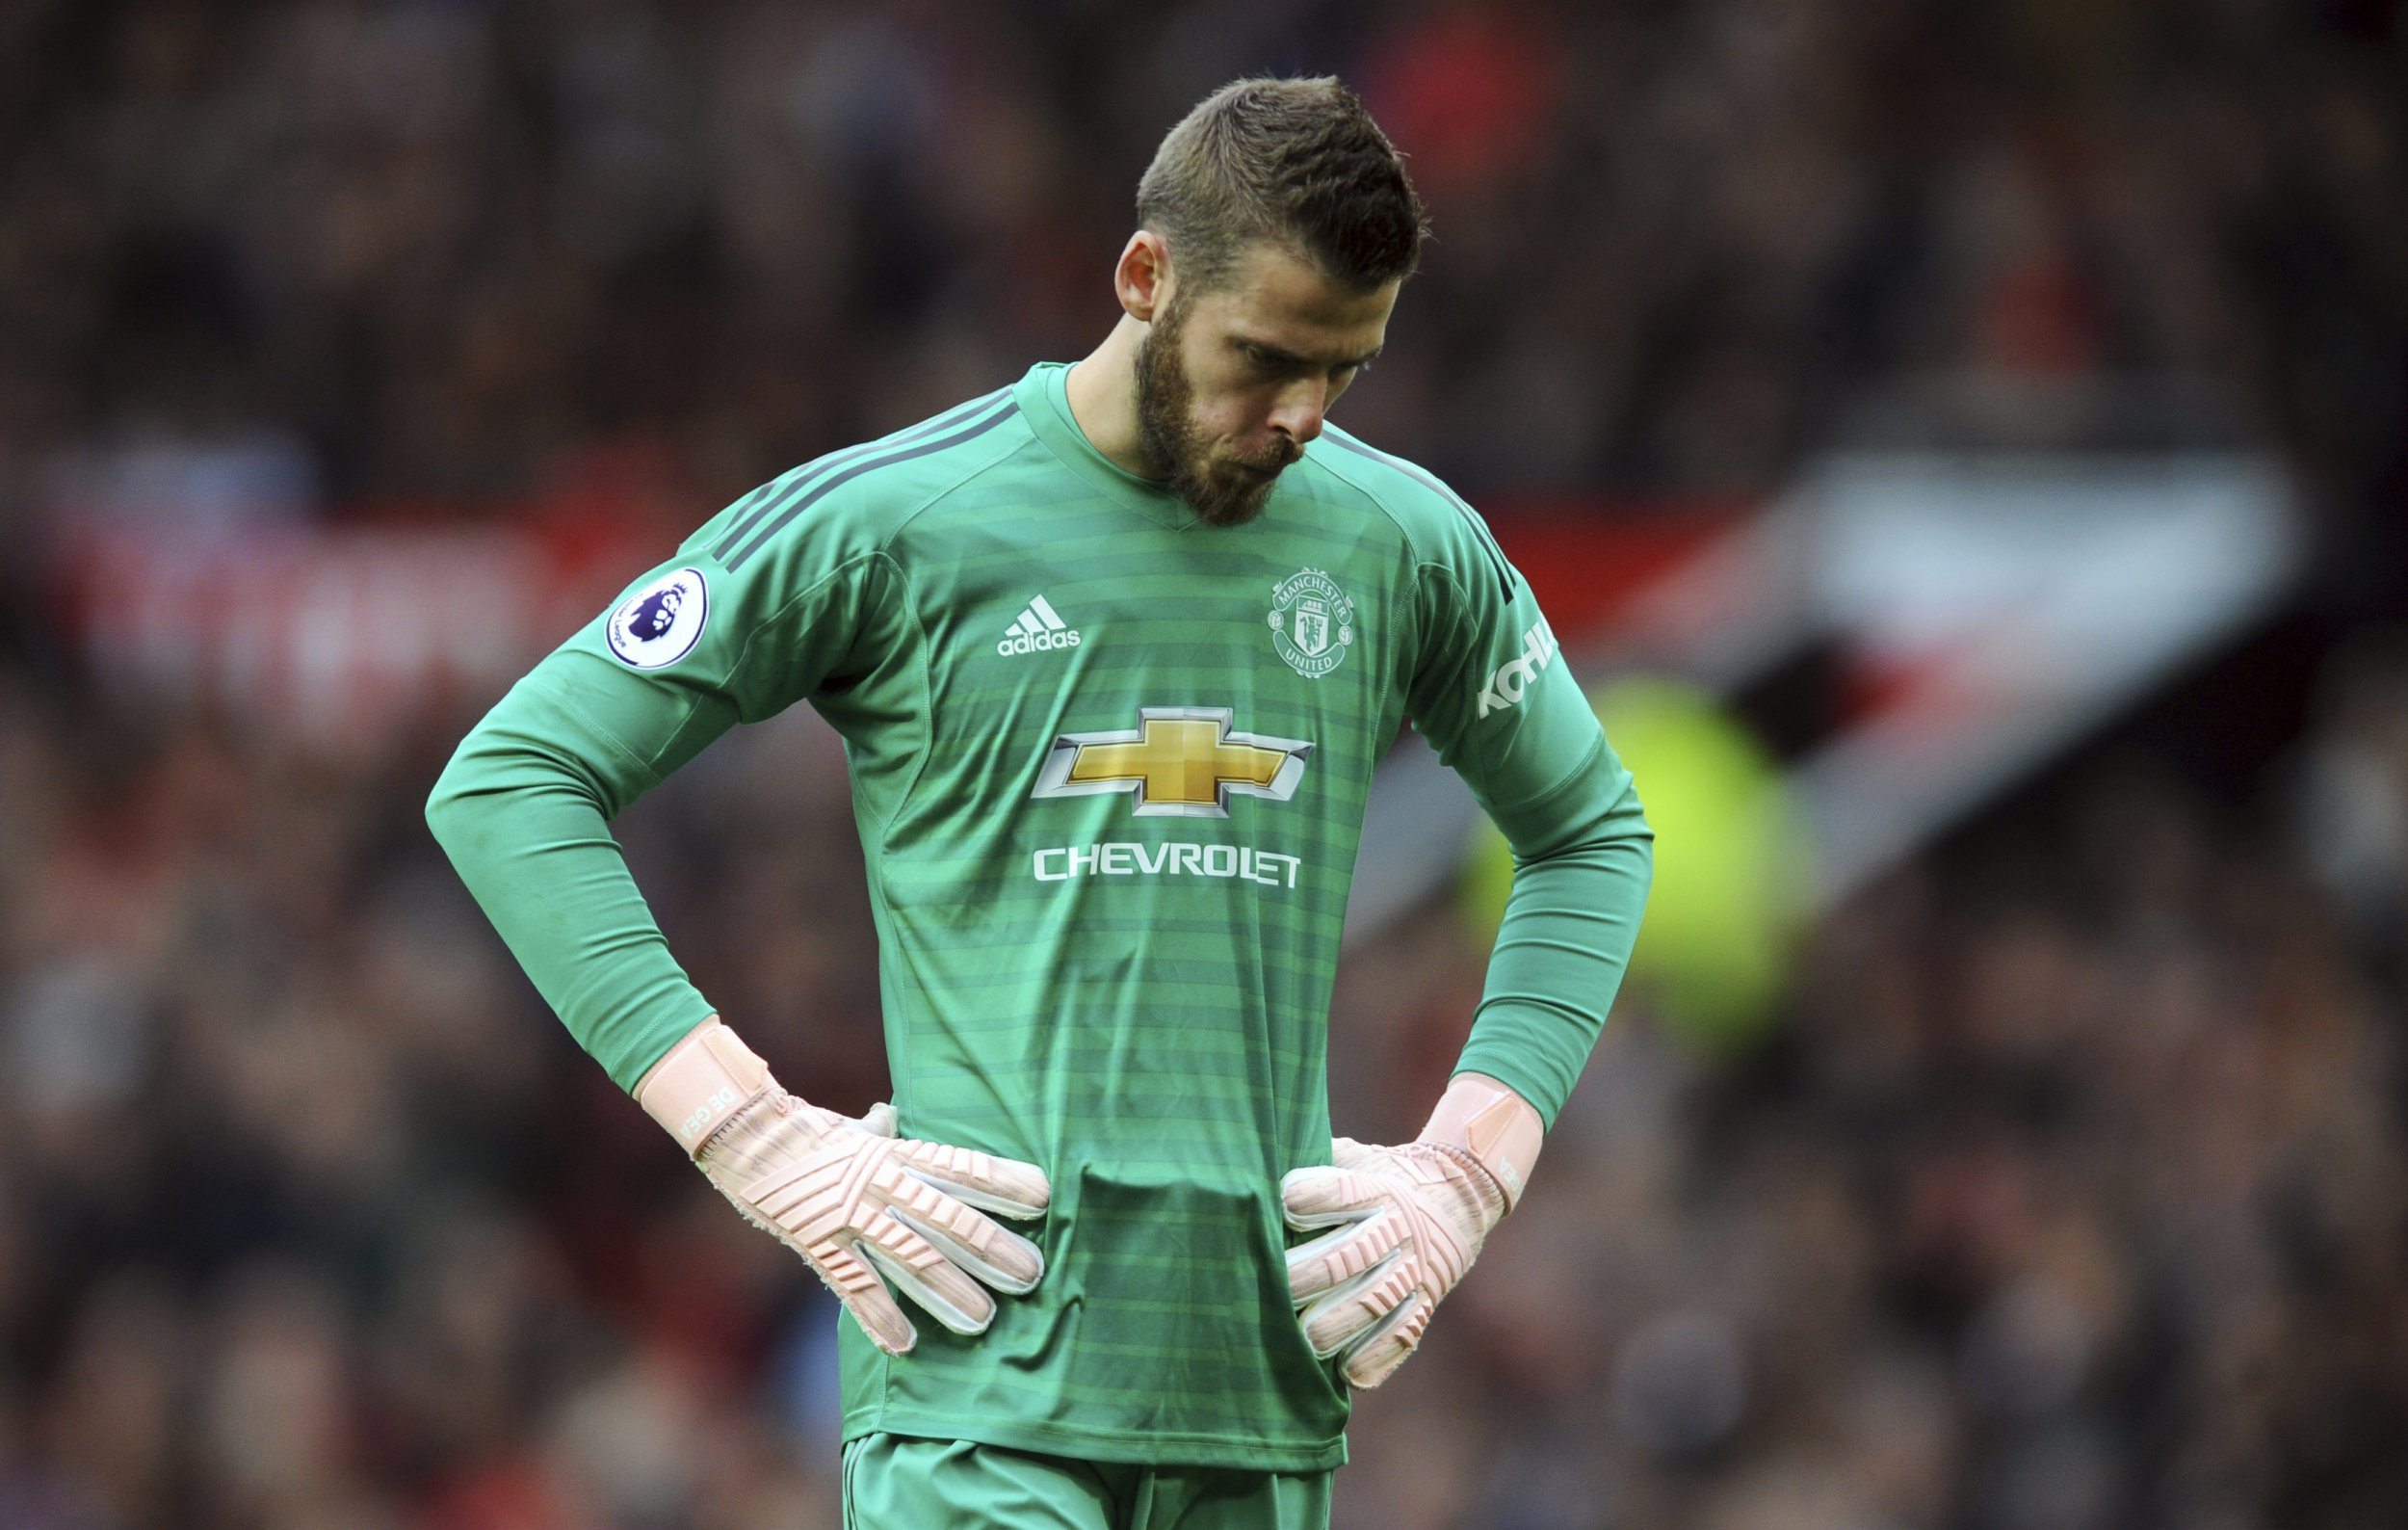 Manchester United fear losing David De Gea after failed talks with agent Jorge Mendes